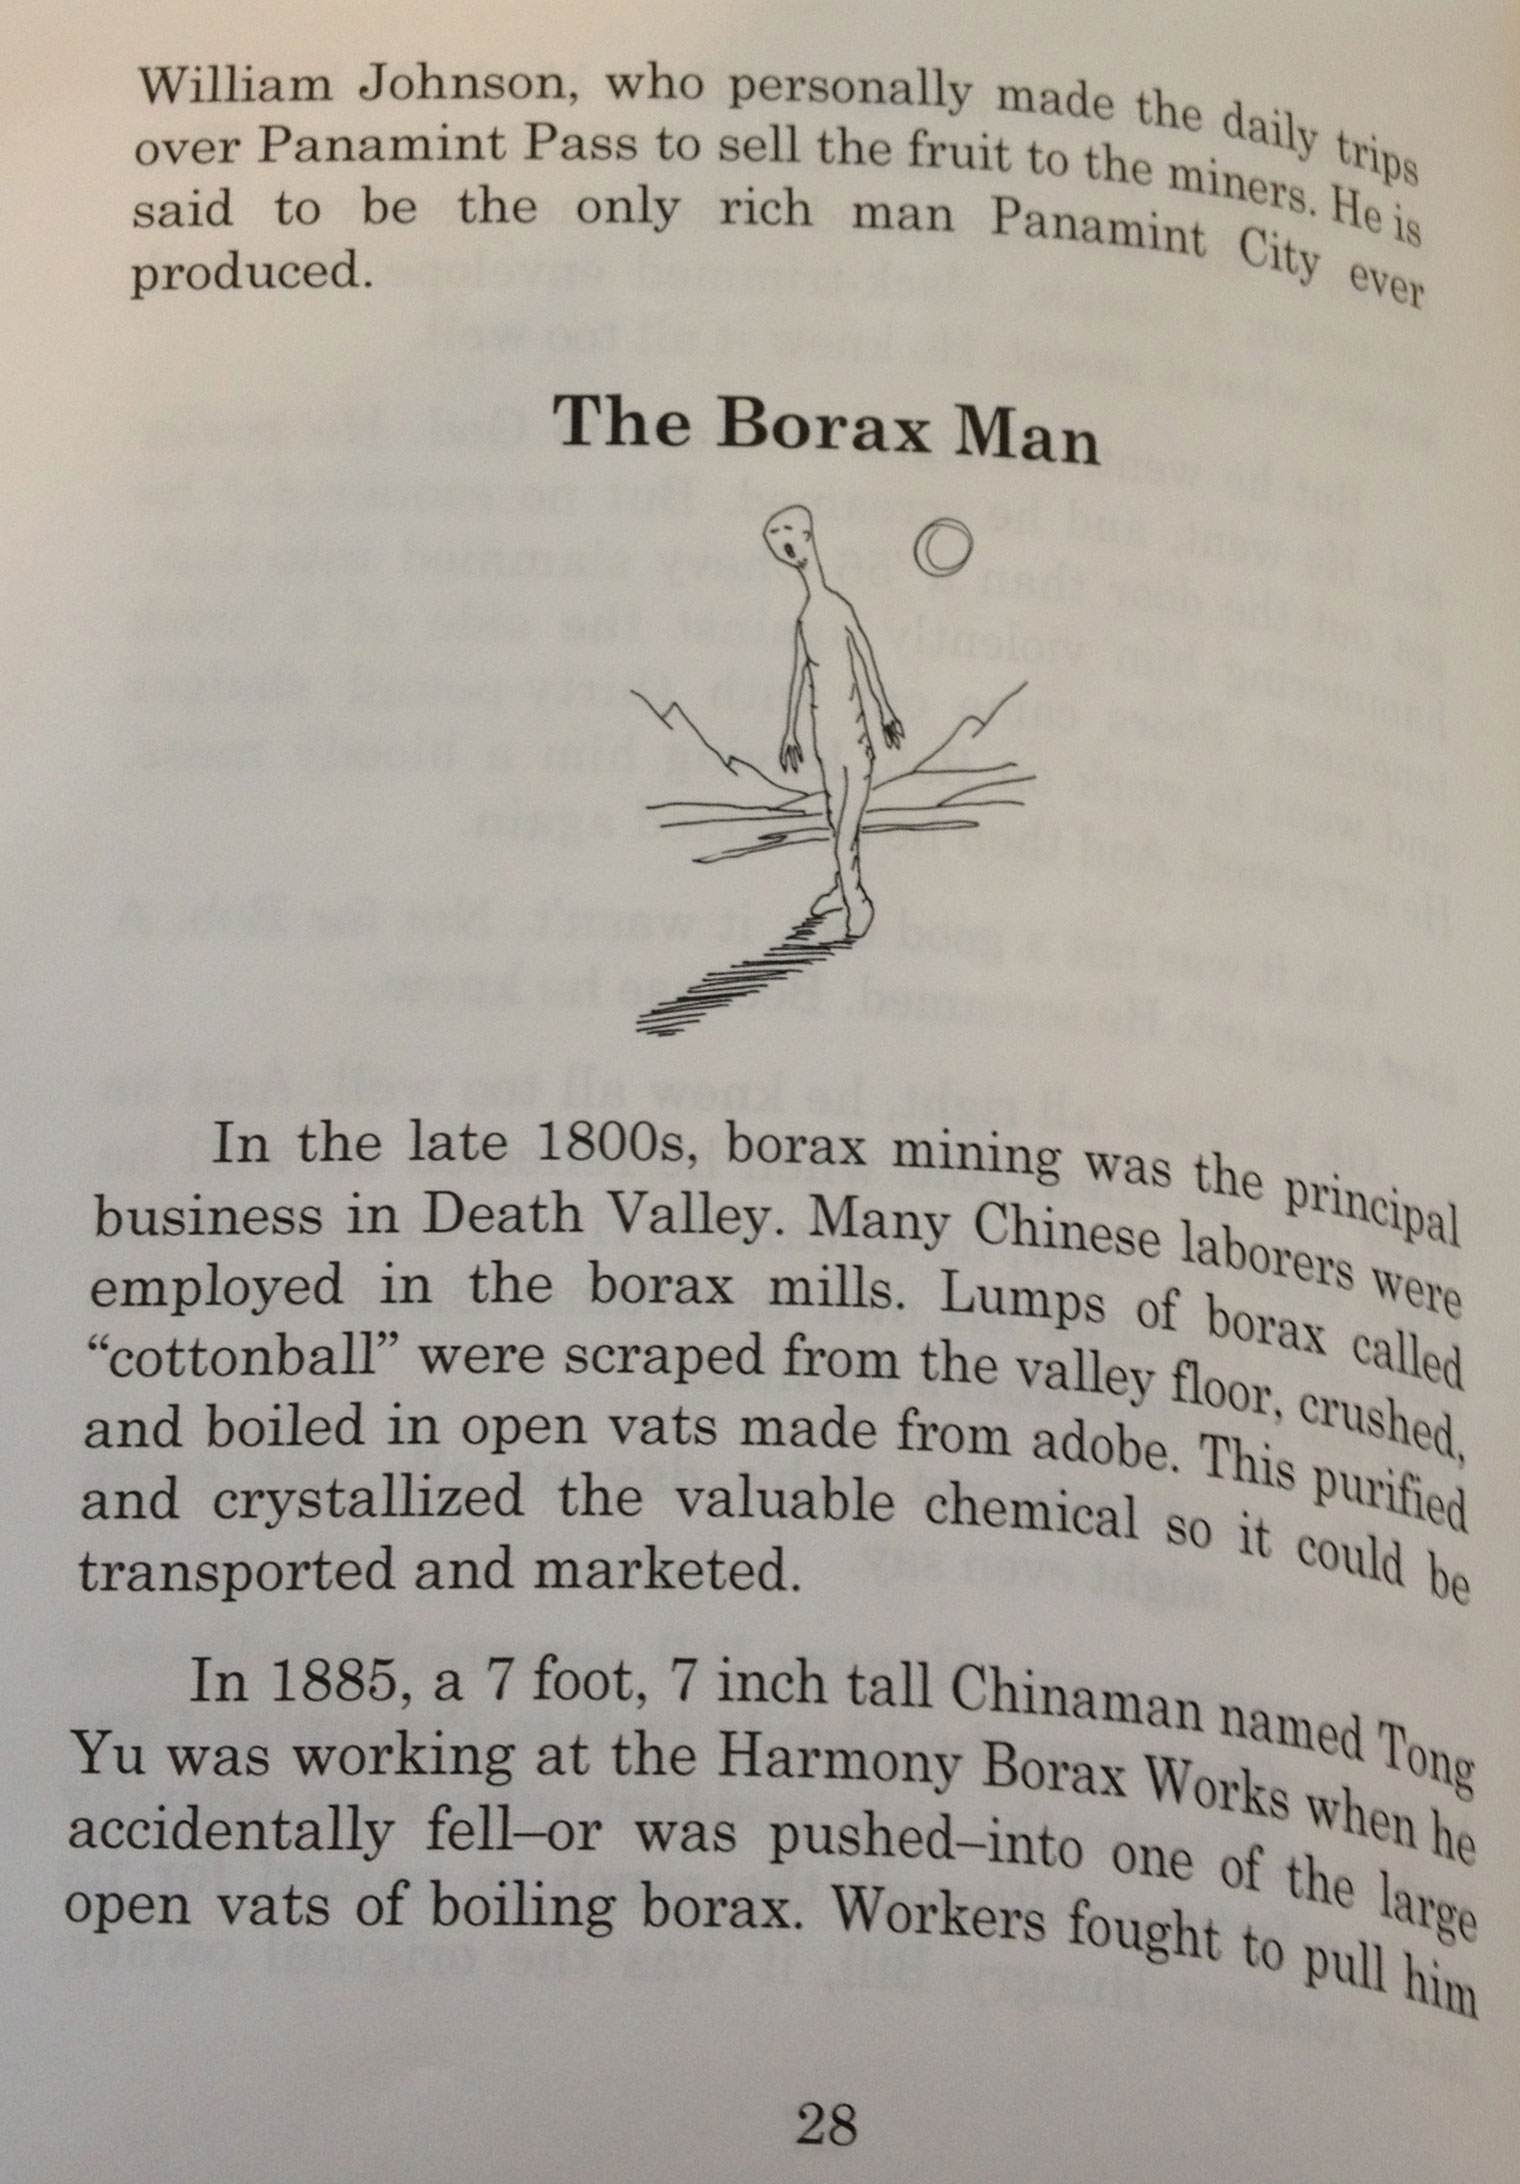 The Borax Man